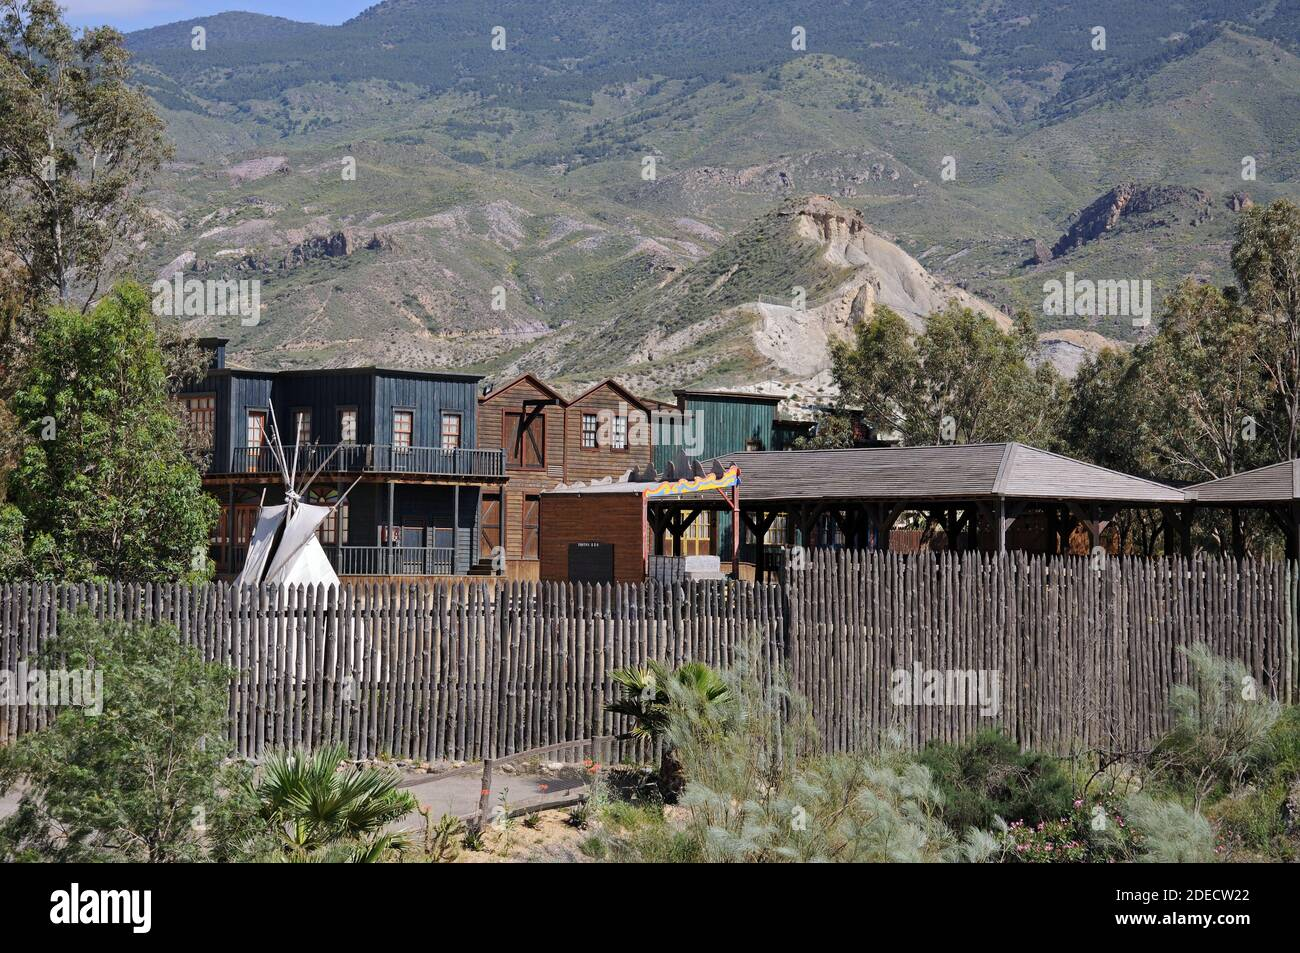 View of Fort Apache at Mini Hollywood with mountains to the rear, Tabernas, Almeria Province, Andalucia, Spain, Europe Stock Photo